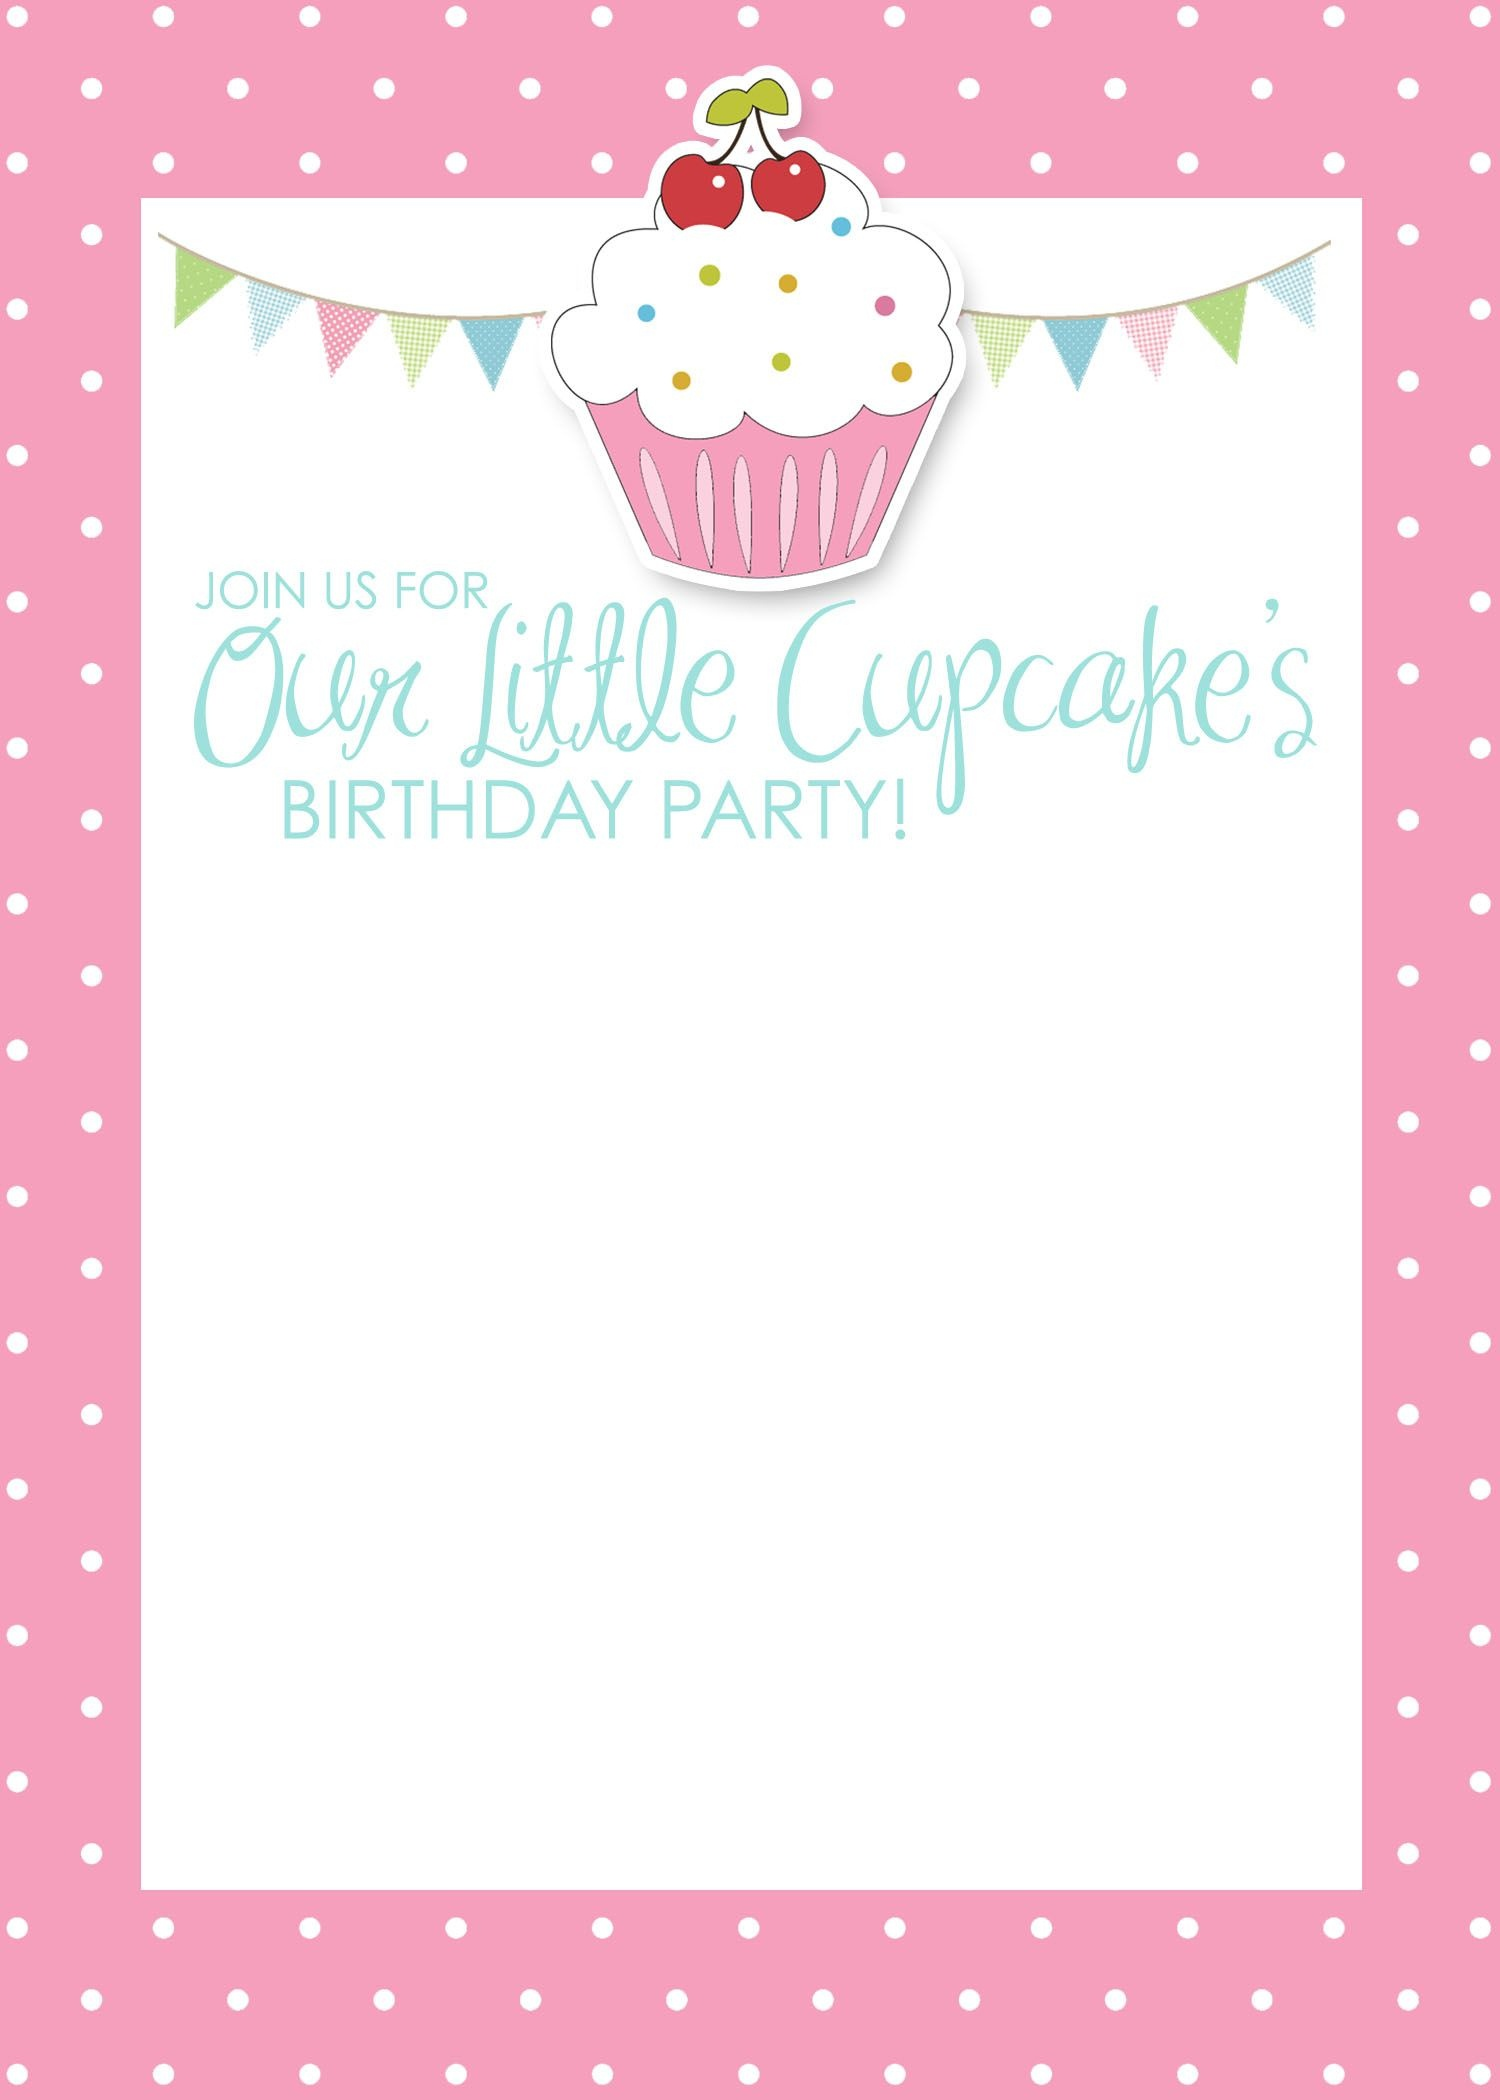 Cupcake Birthday Party With Free Printables | Birthday | Free - Free Printable Polka Dot Birthday Party Invitations